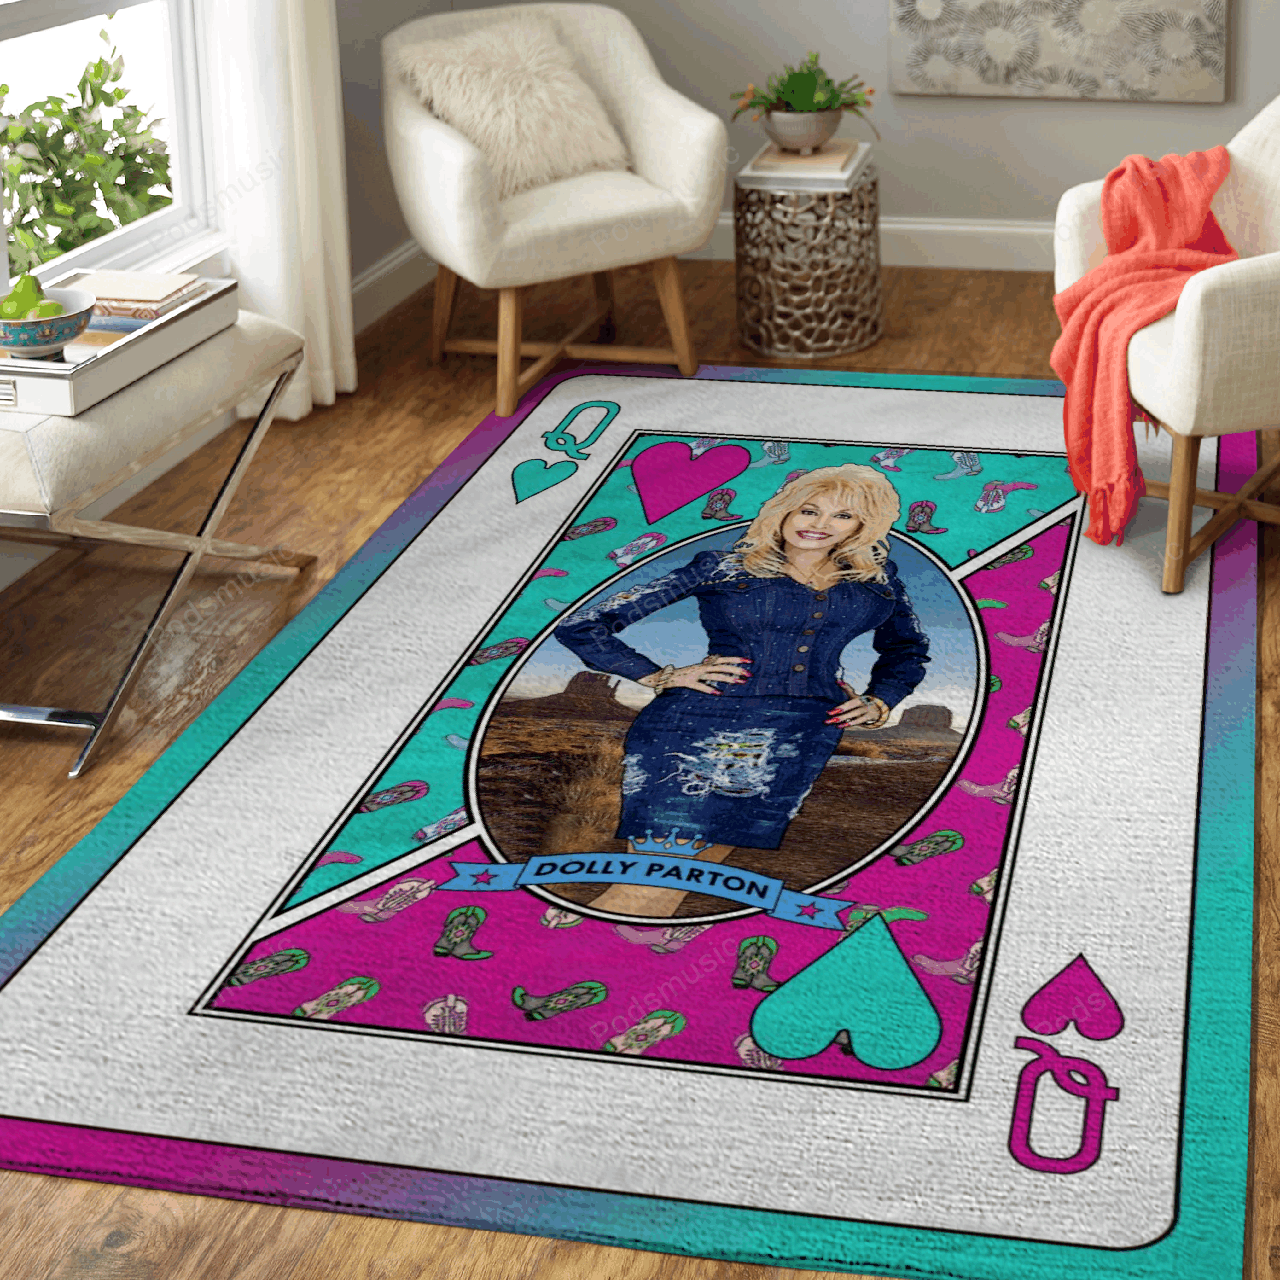 Queen Dolly Parton - Queens Of Music Art For Fans Area Rug Living Room Carpet Floor Decor